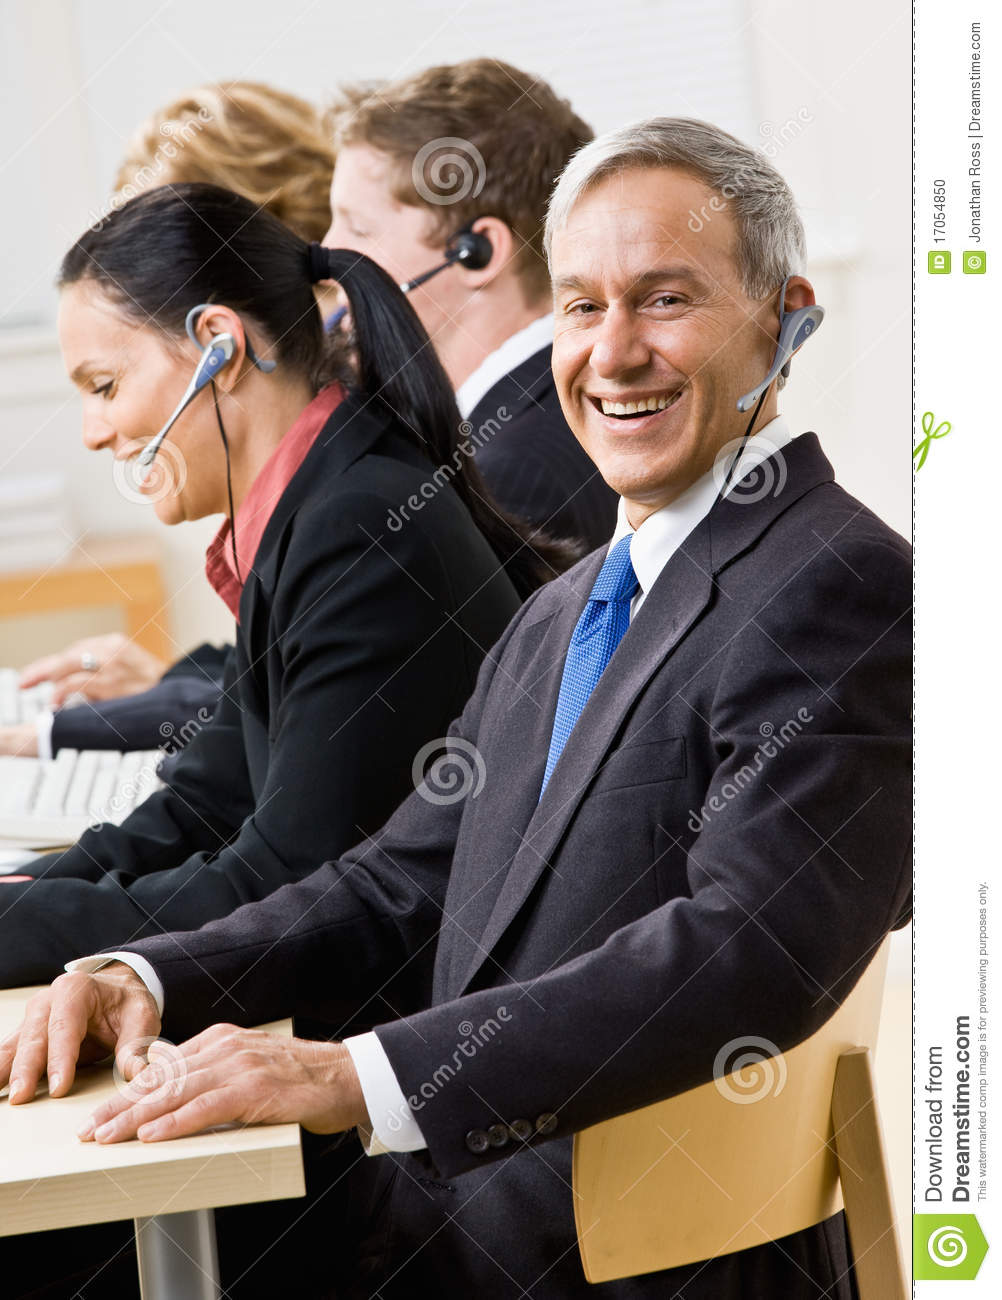 Business People Talking On Headsets Stock Photo Image Of